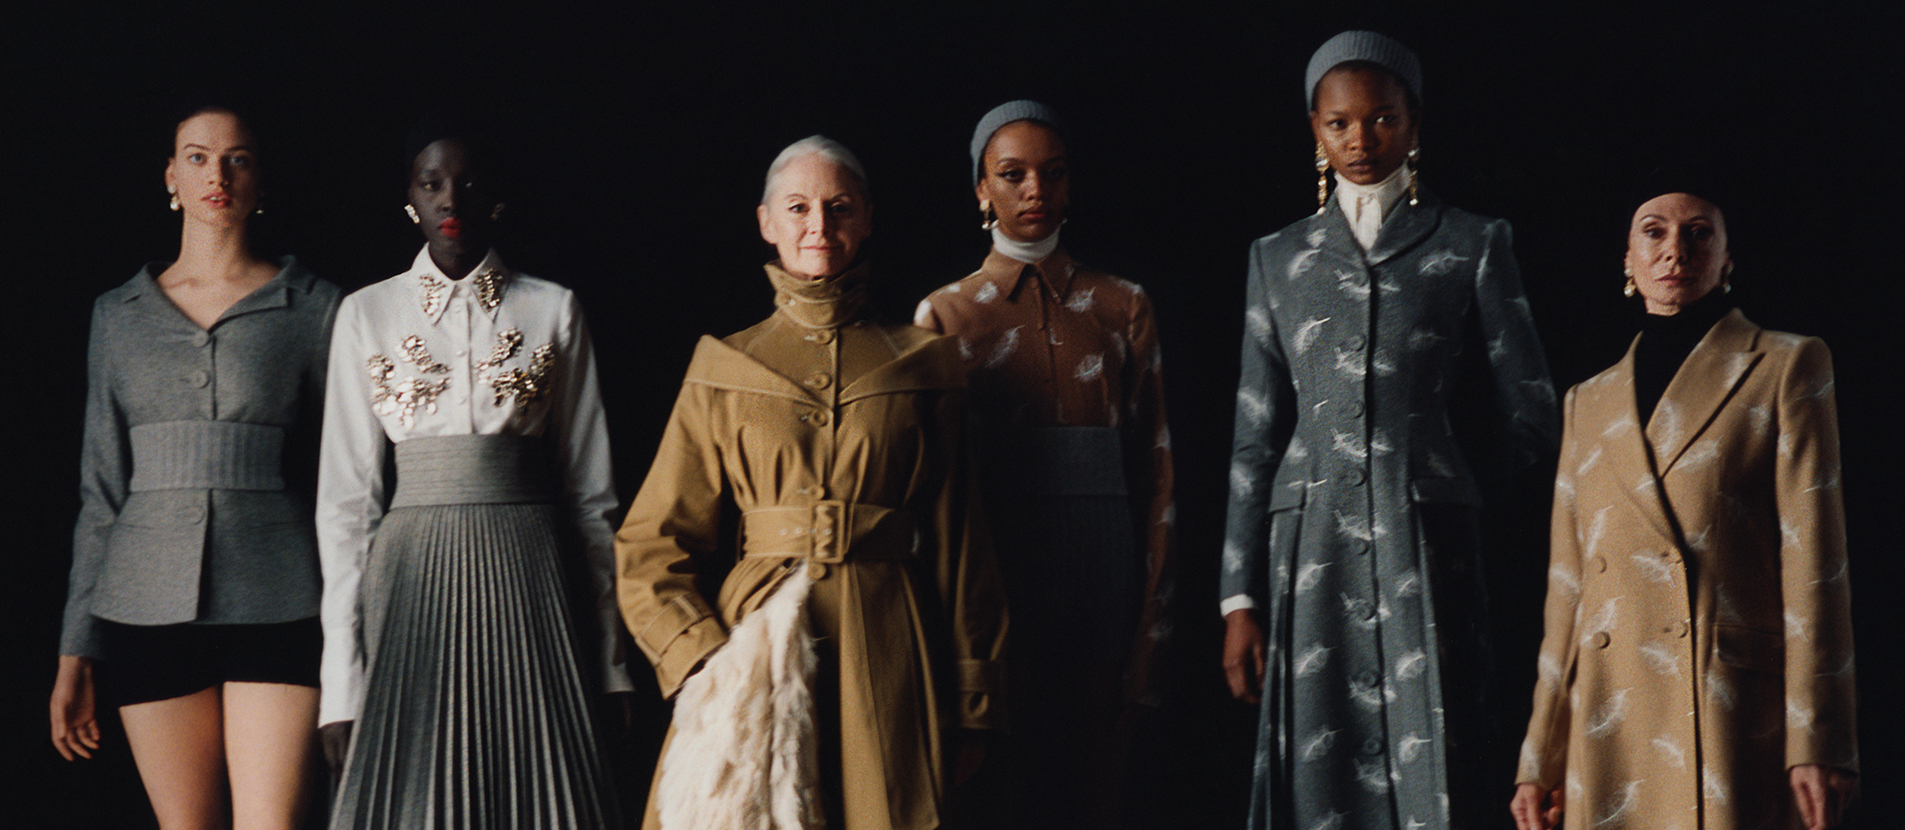 Watch the autumn winter 2021 show